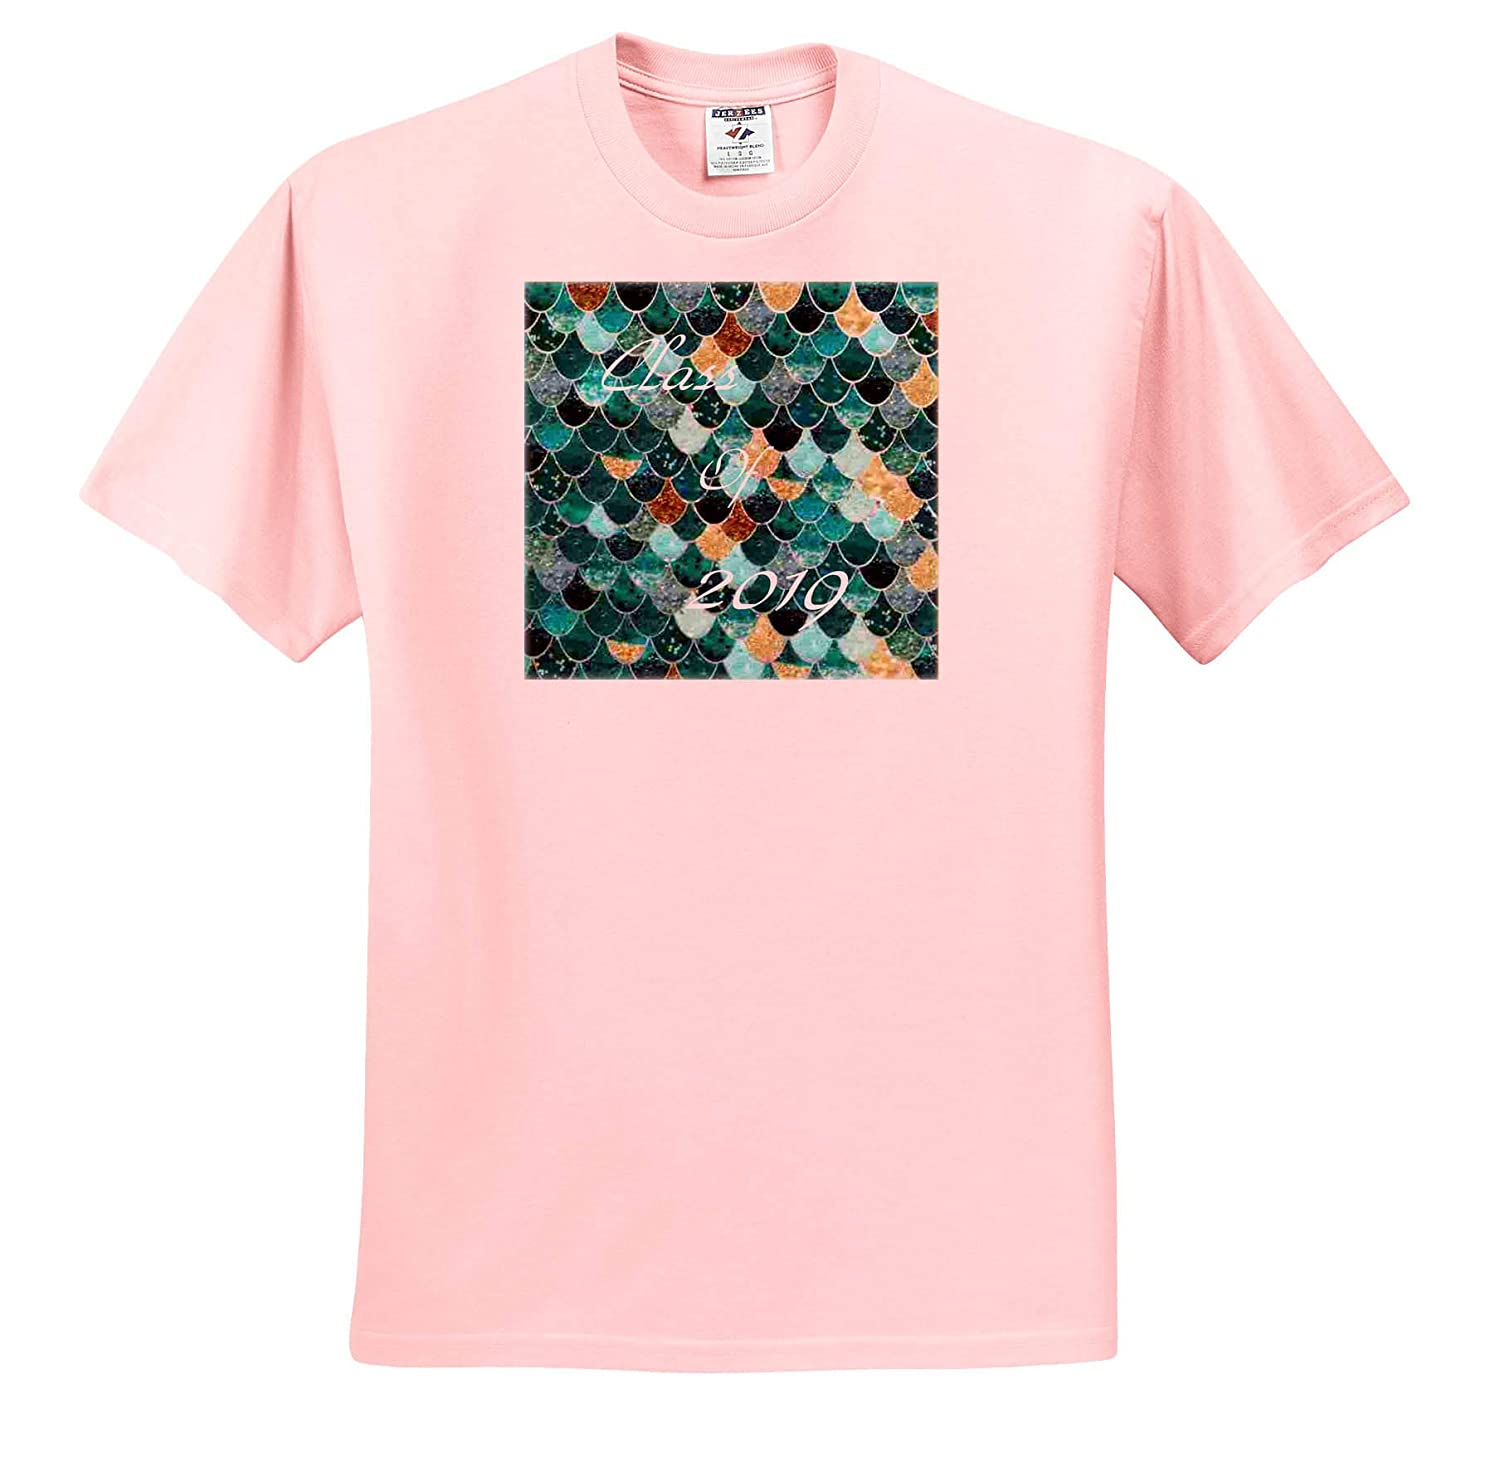 3dRose Lens Art by Florene Image of Aqua Turquoise Mermaid Scales with Class 2019 T-Shirts Graduation